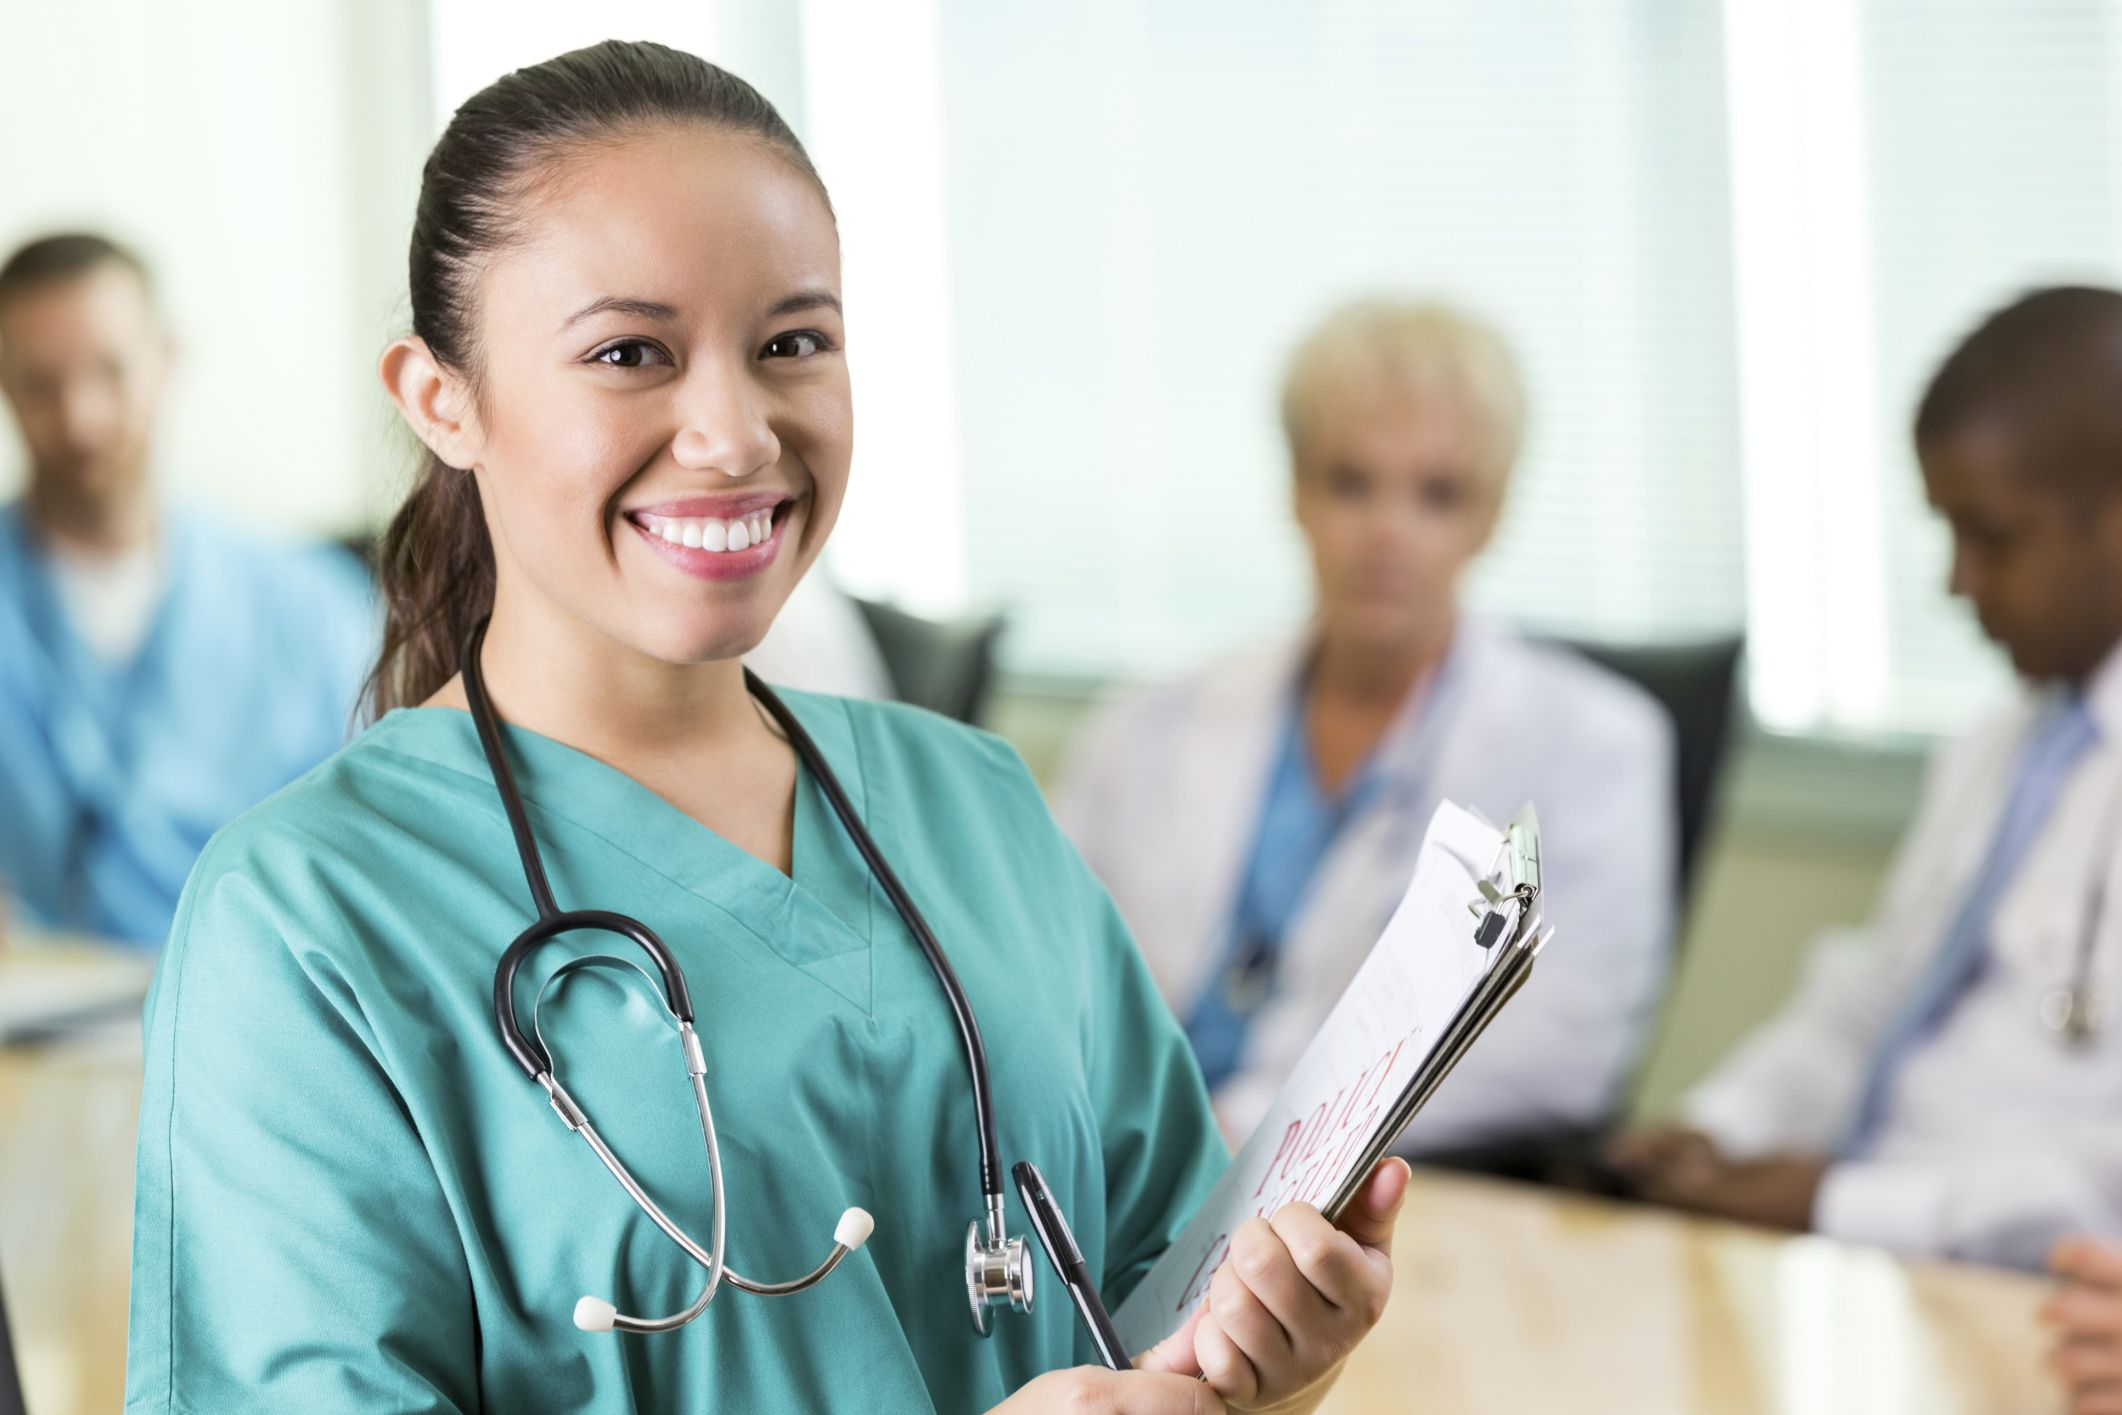 Skills And Qualities You Need To Be A Medical Assistant